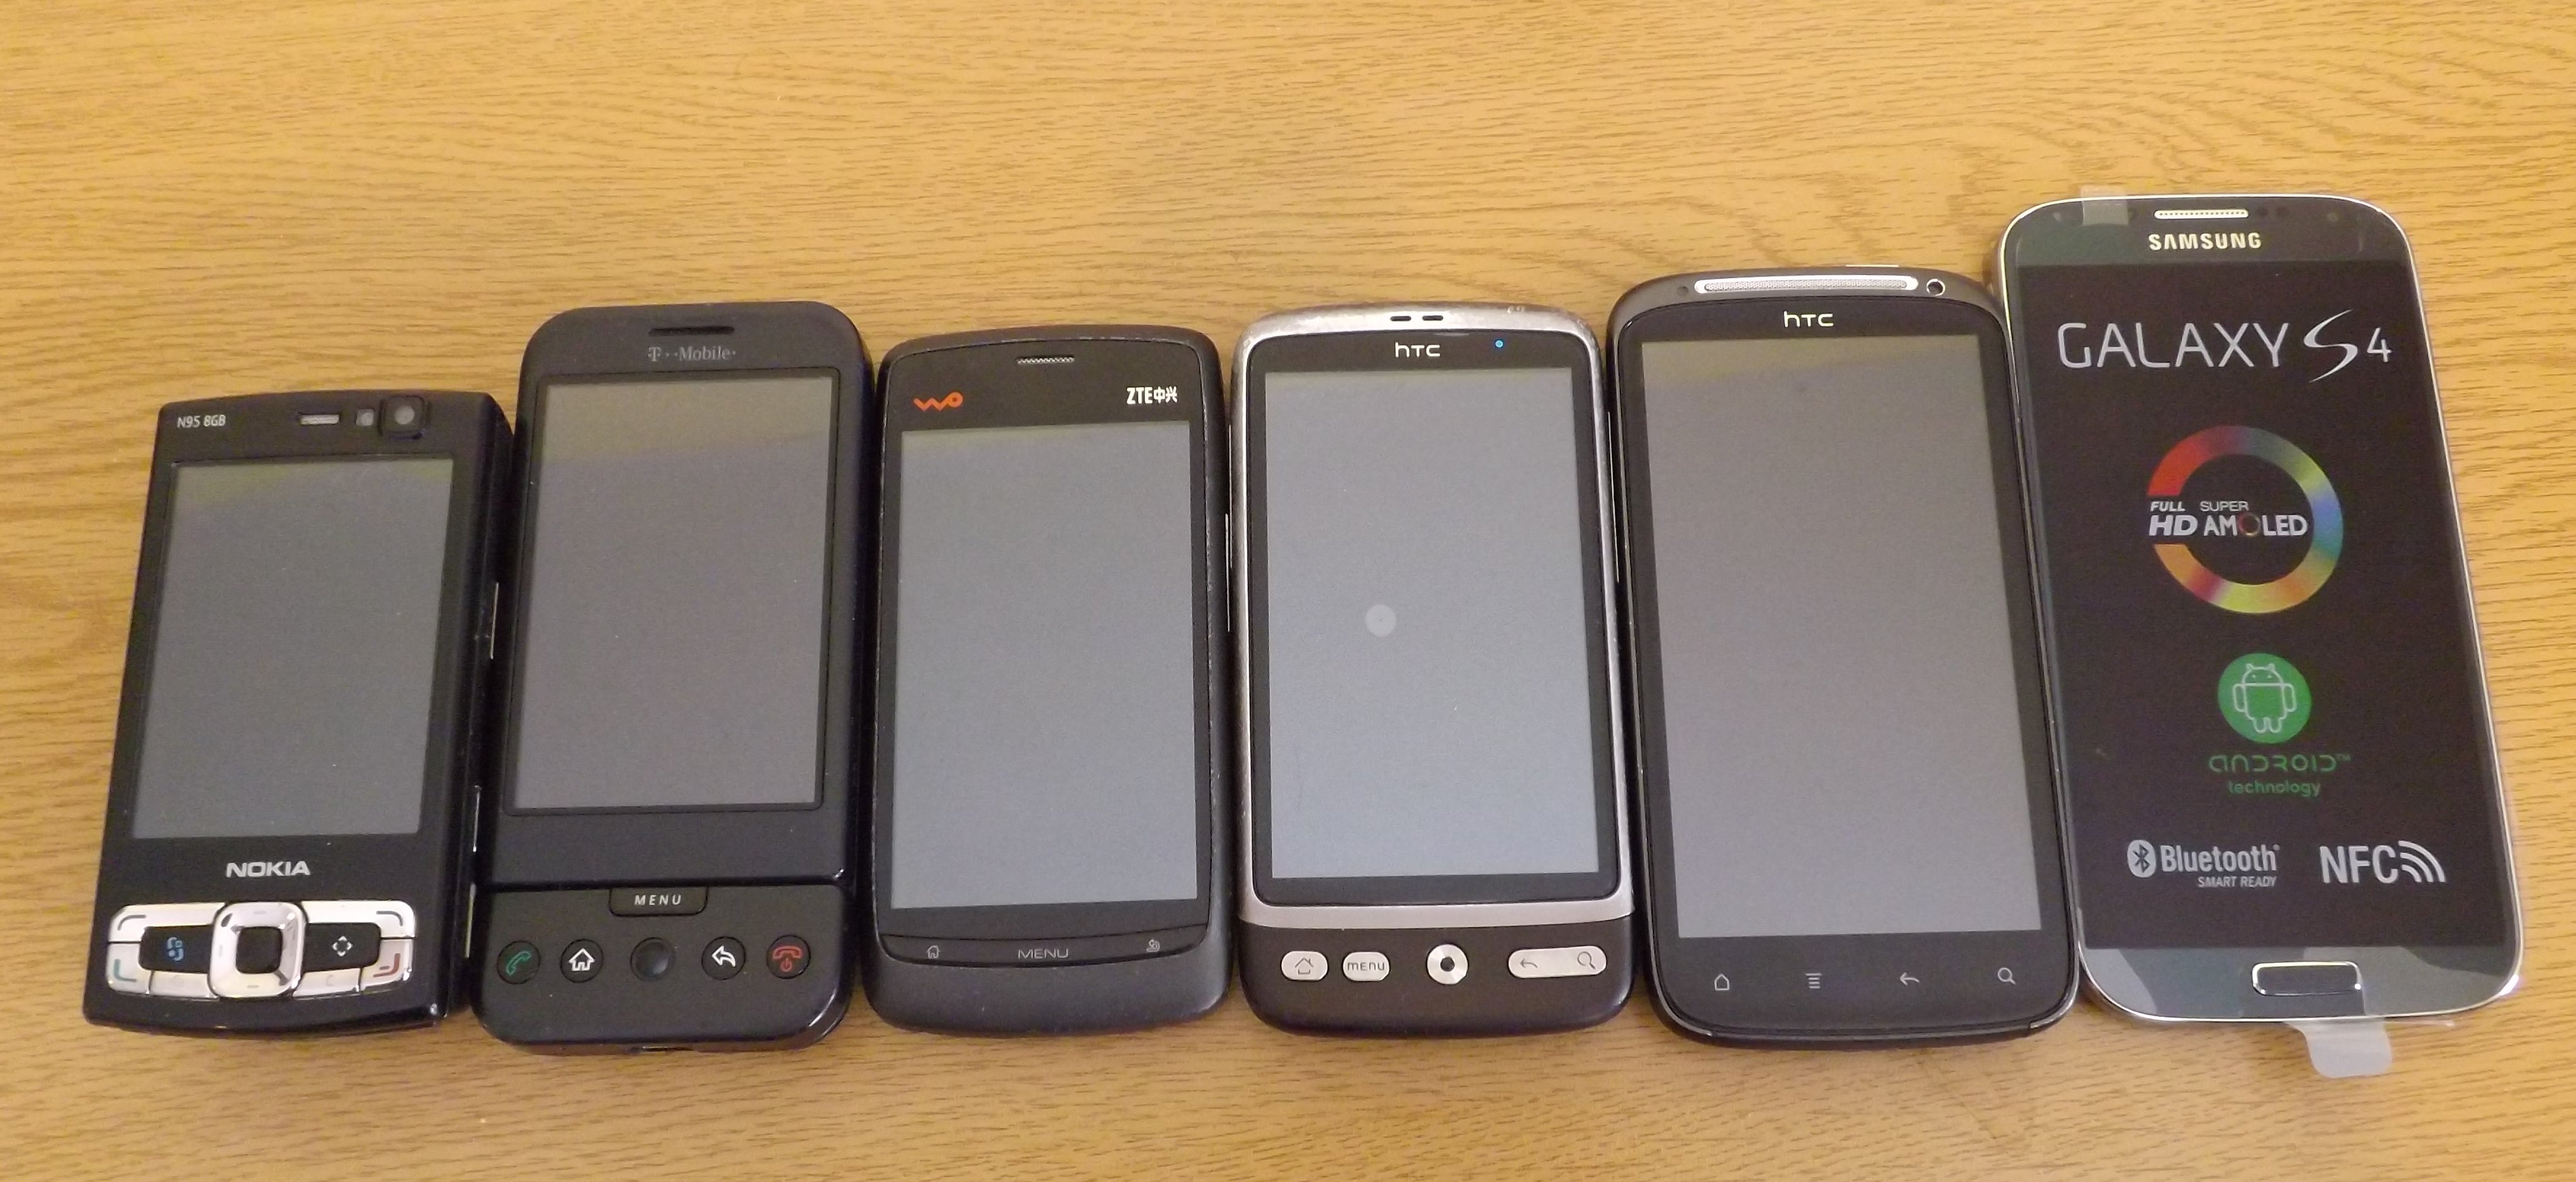 My Smartphone Evolution From N95 8gb To Samsung Galaxy S4 Sgs4